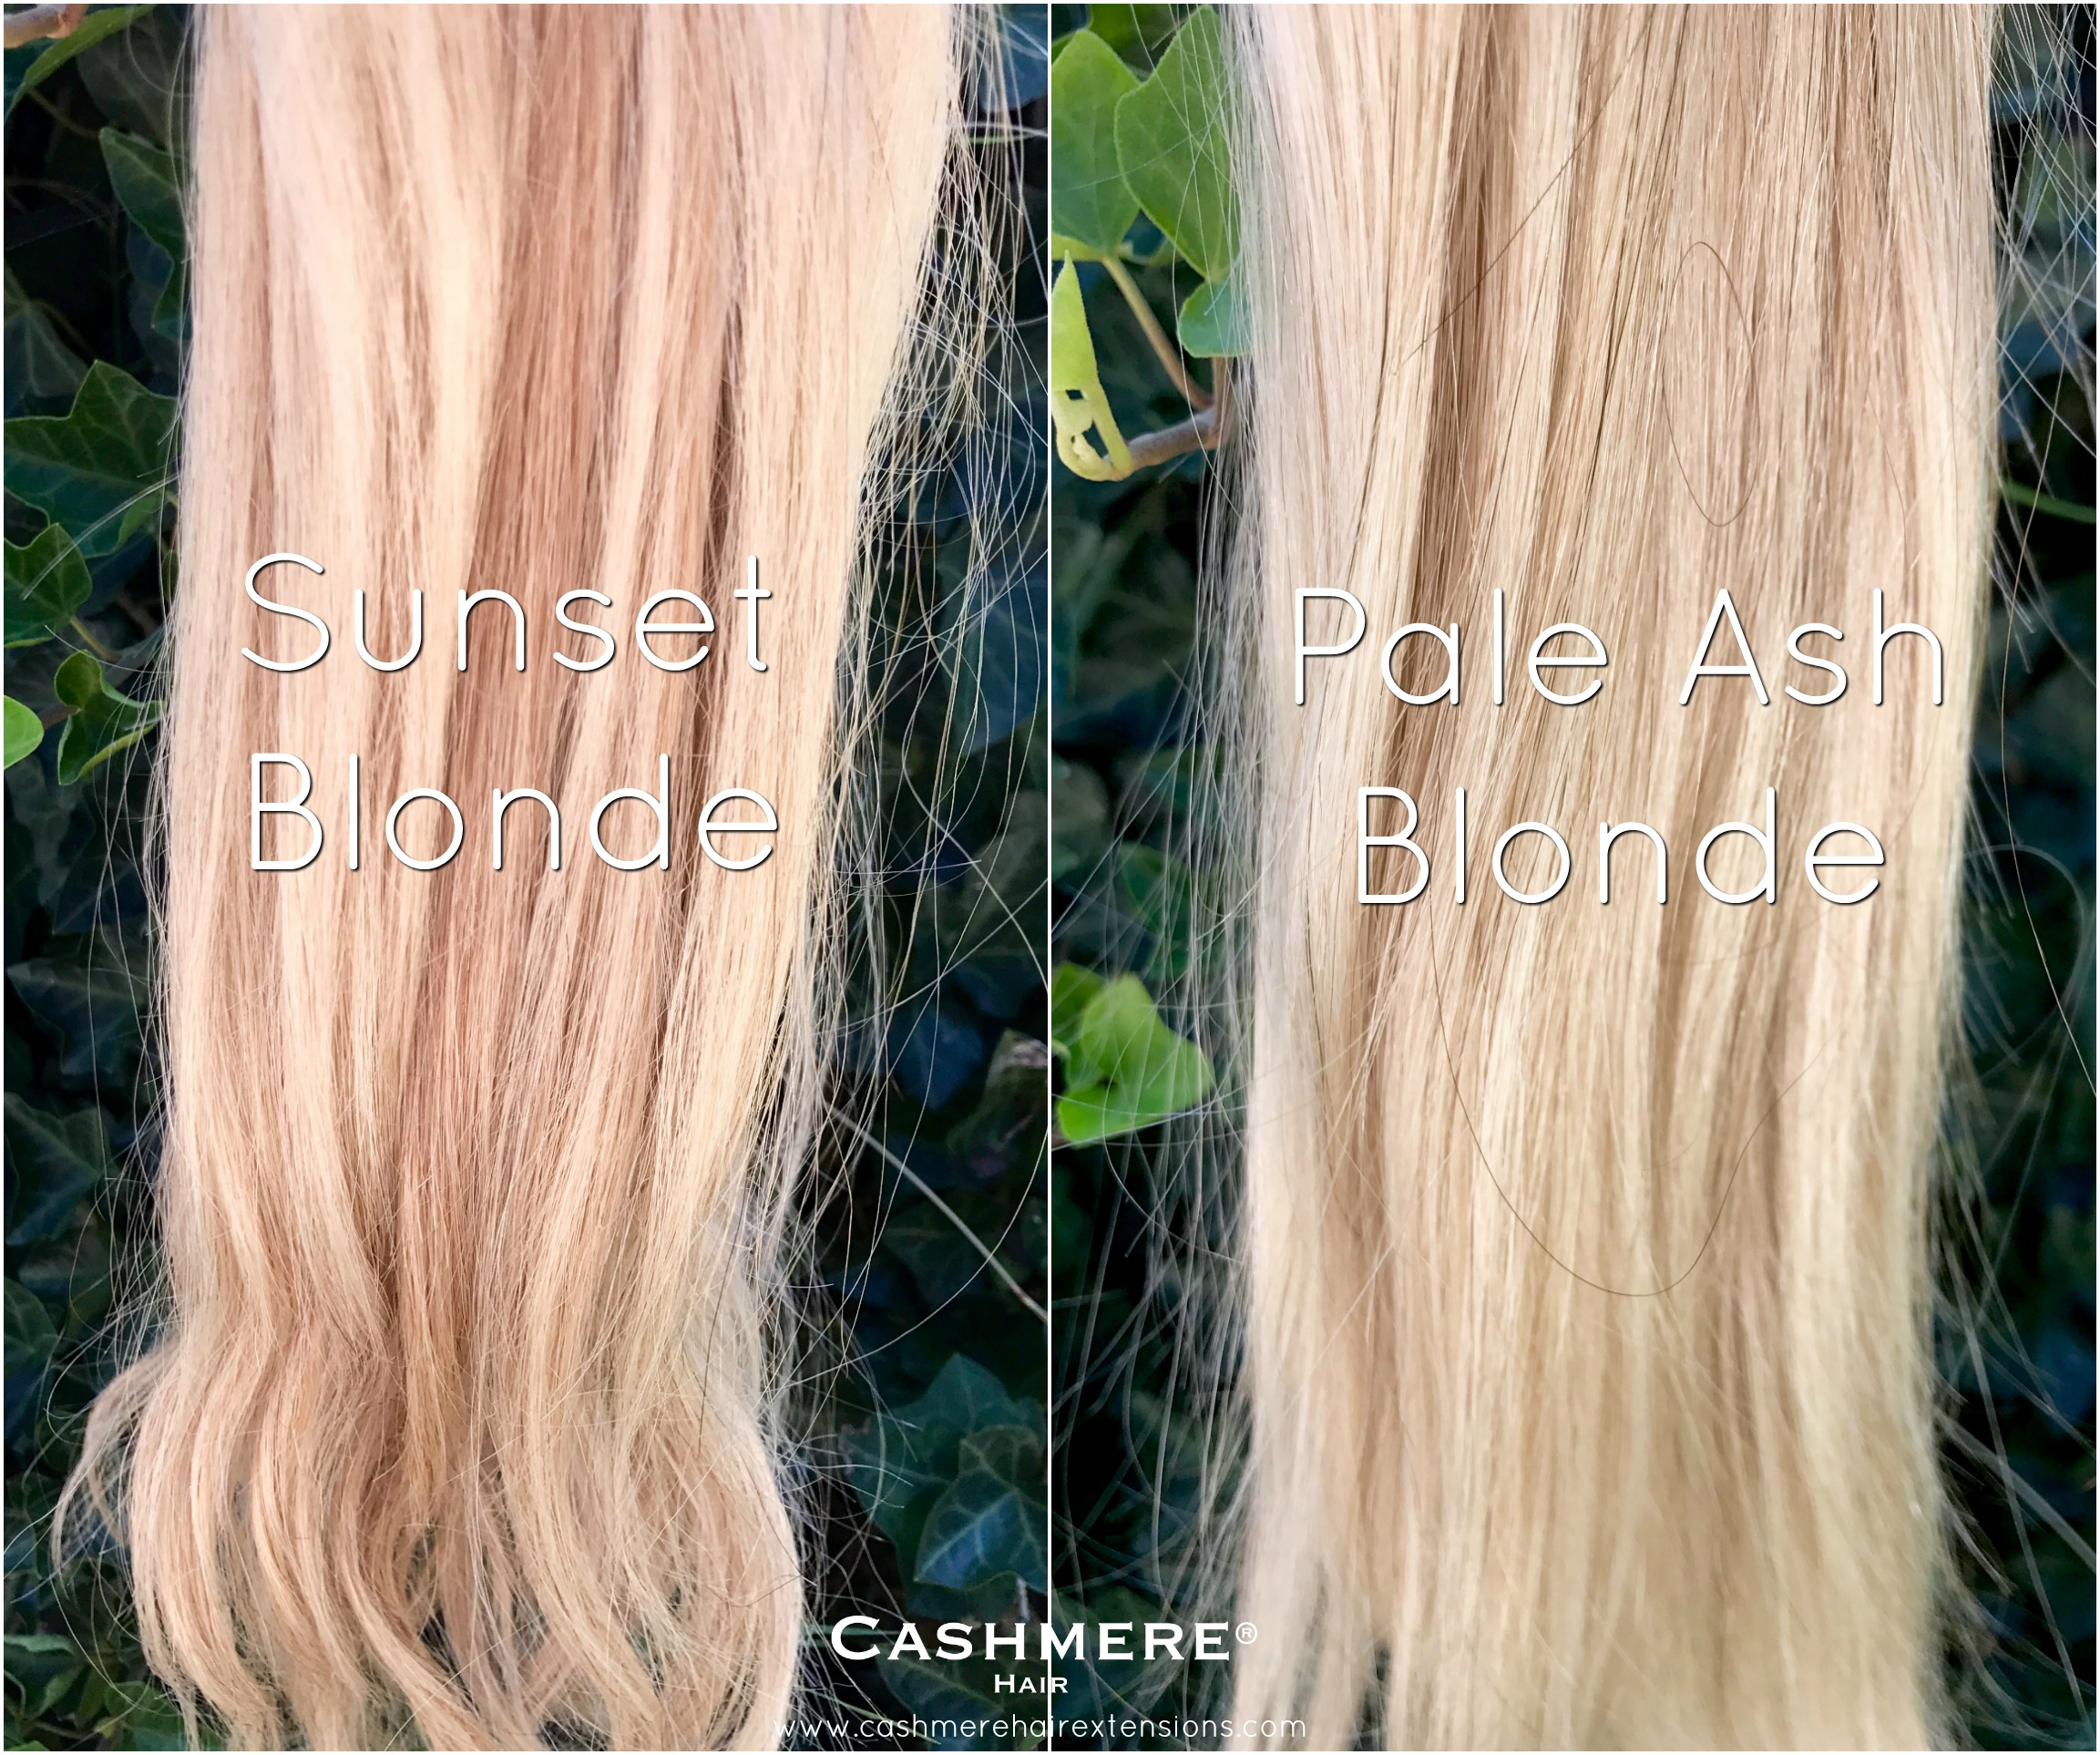 Sunset Blonde Vs Pale Ash Blonde Cashmere Hair Clip In Extensions